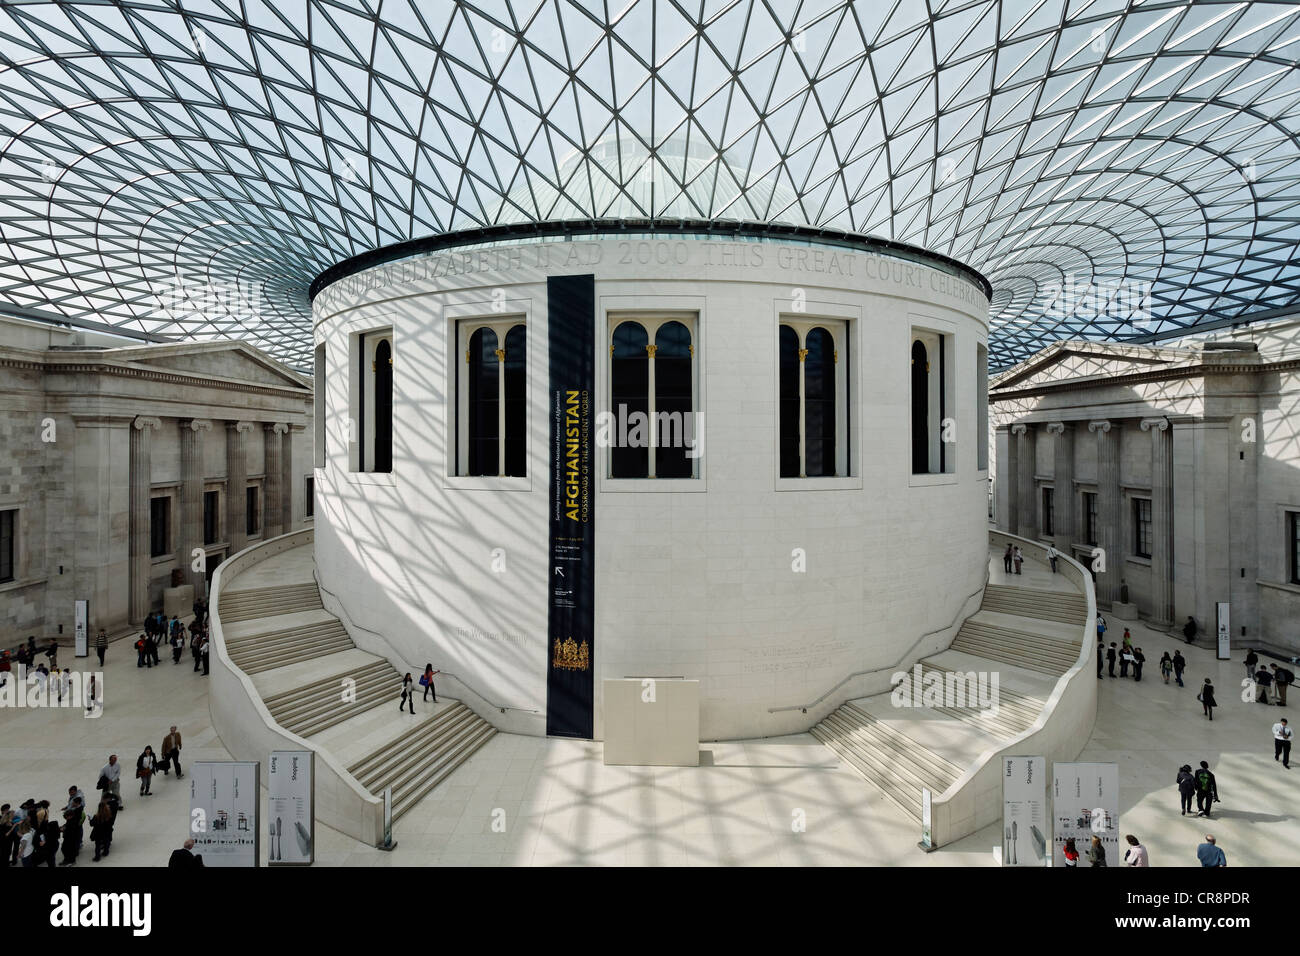 Great Court, inner courtyard with modern domed roof, steel and glass construction, British Museum, London, England Stock Photo